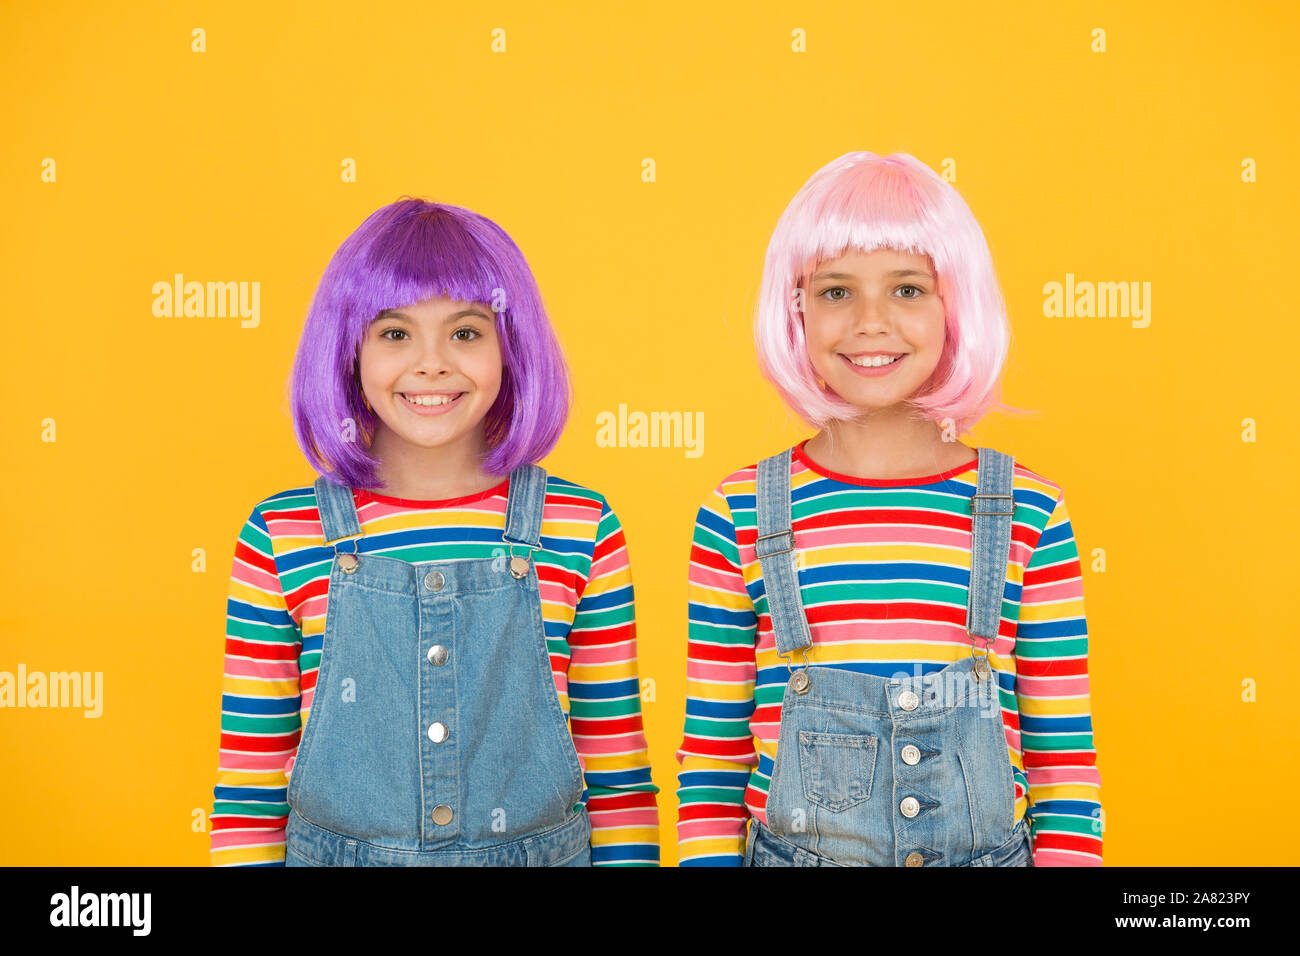 Ultra Modern Girls Happy Girls With Straight Short Hairstyle In Casual Style Cute Little Girls Smile With Fashion Look Small Girls Wear Colorful Hair Wigs Yellow Background Fashion And Beauty Stock Photo